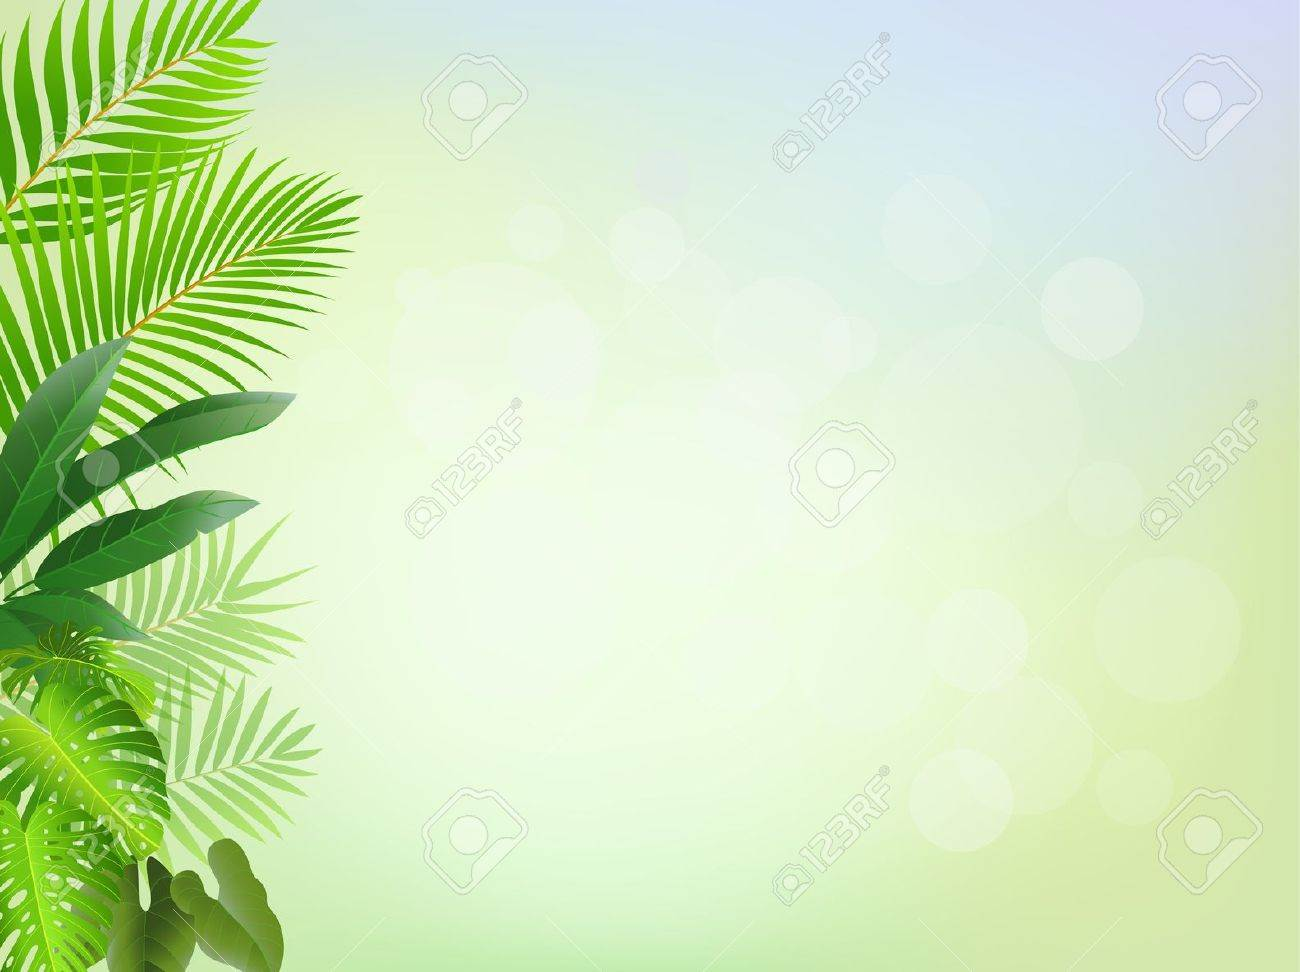 Tropical Background Stock Image  Image:  1300x972